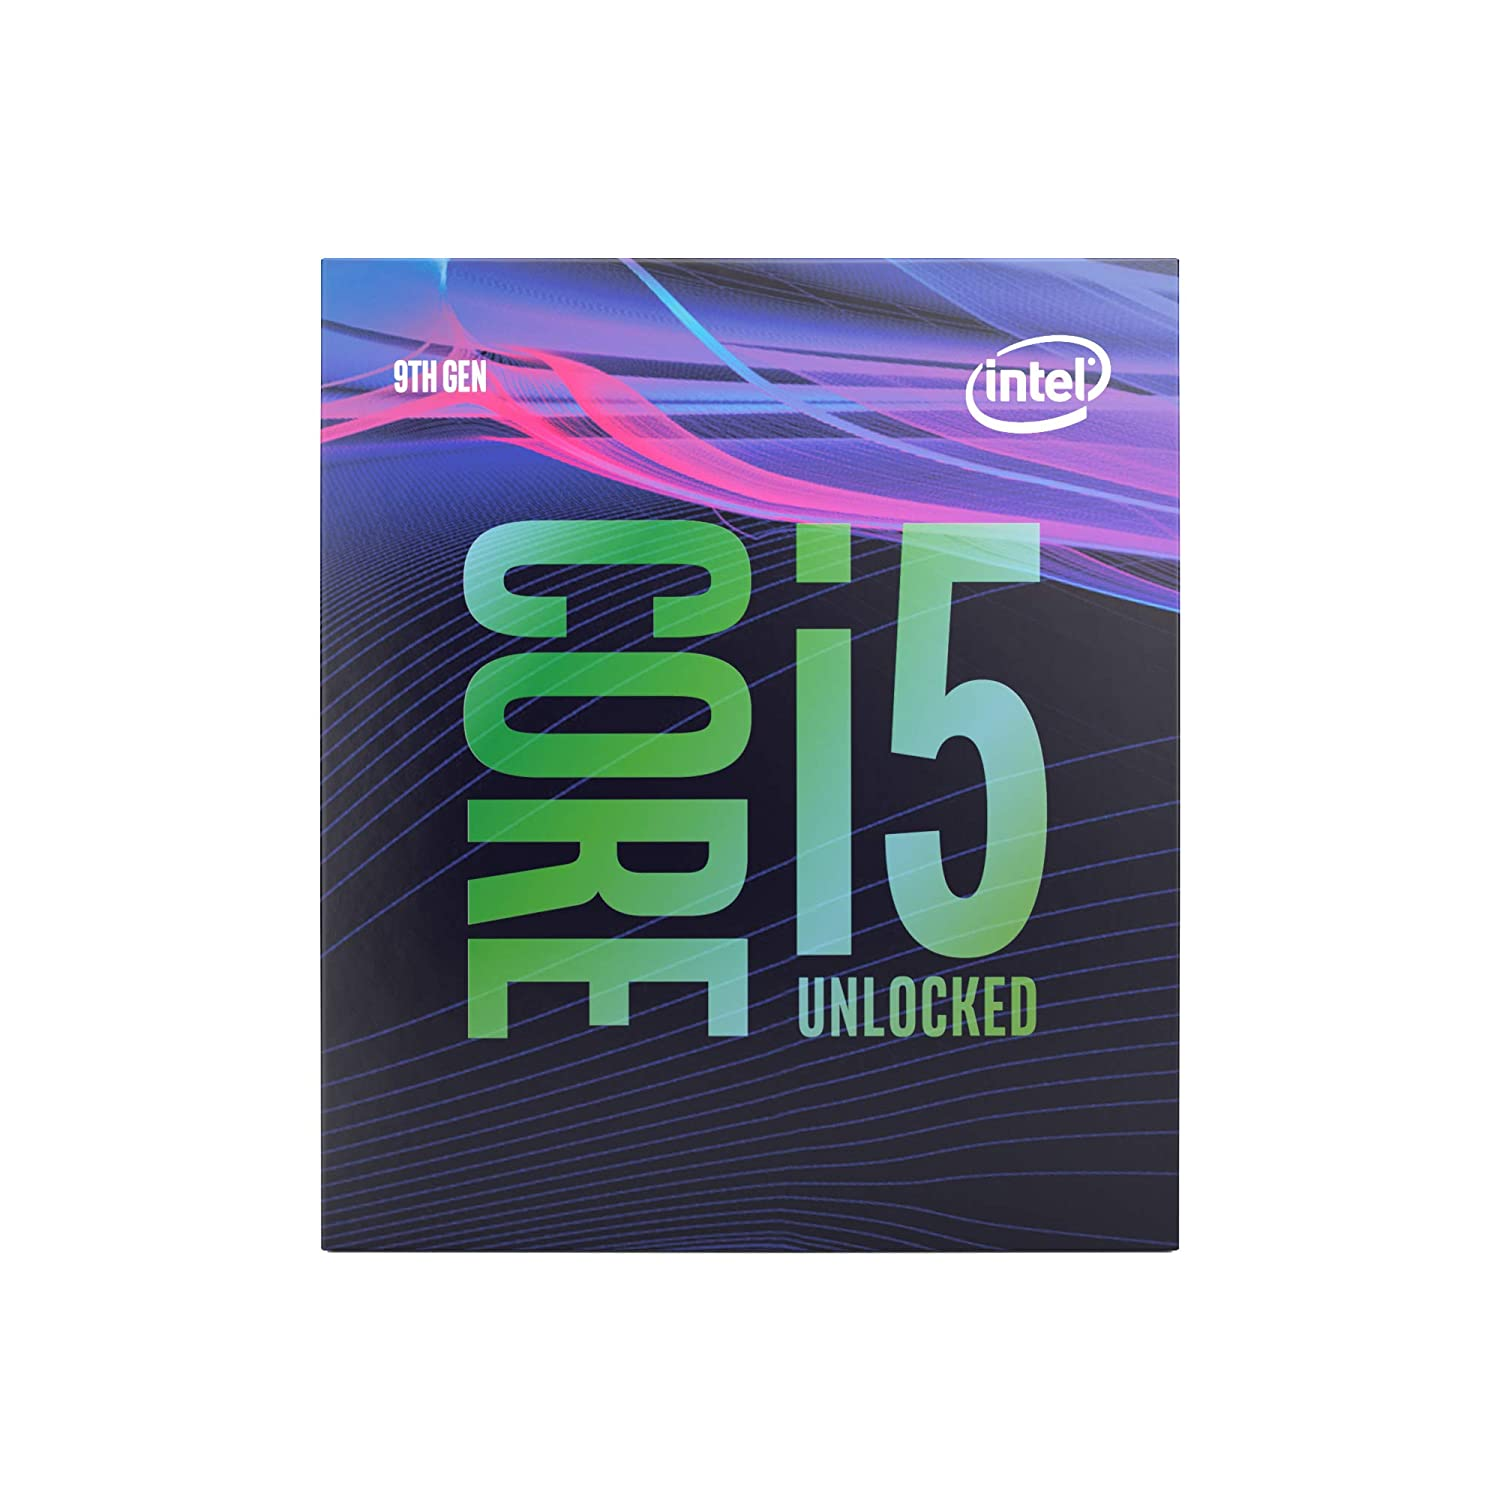 Intel Core i5-9600K Desktop Processor 6 Cores up to 4 6 GHz Turbo Unlocked  LGA1151 300 Series 95W